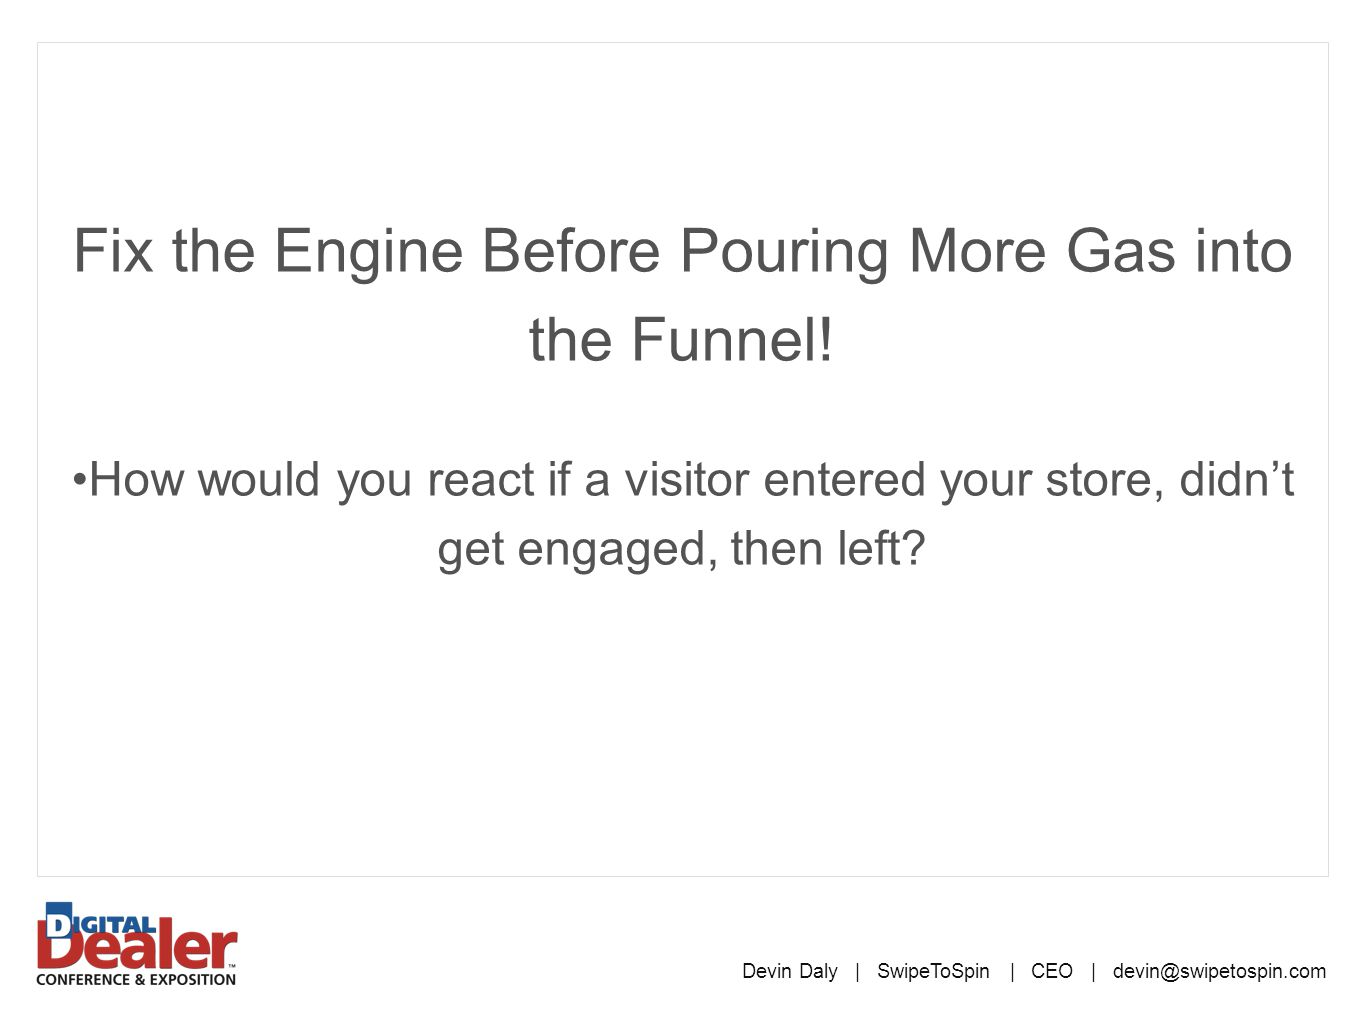 Fix the Engine Before Pouring More Gas into the Funnel! How would you react if a visitor entered your store, didn't get engaged, then left? Devin Daly